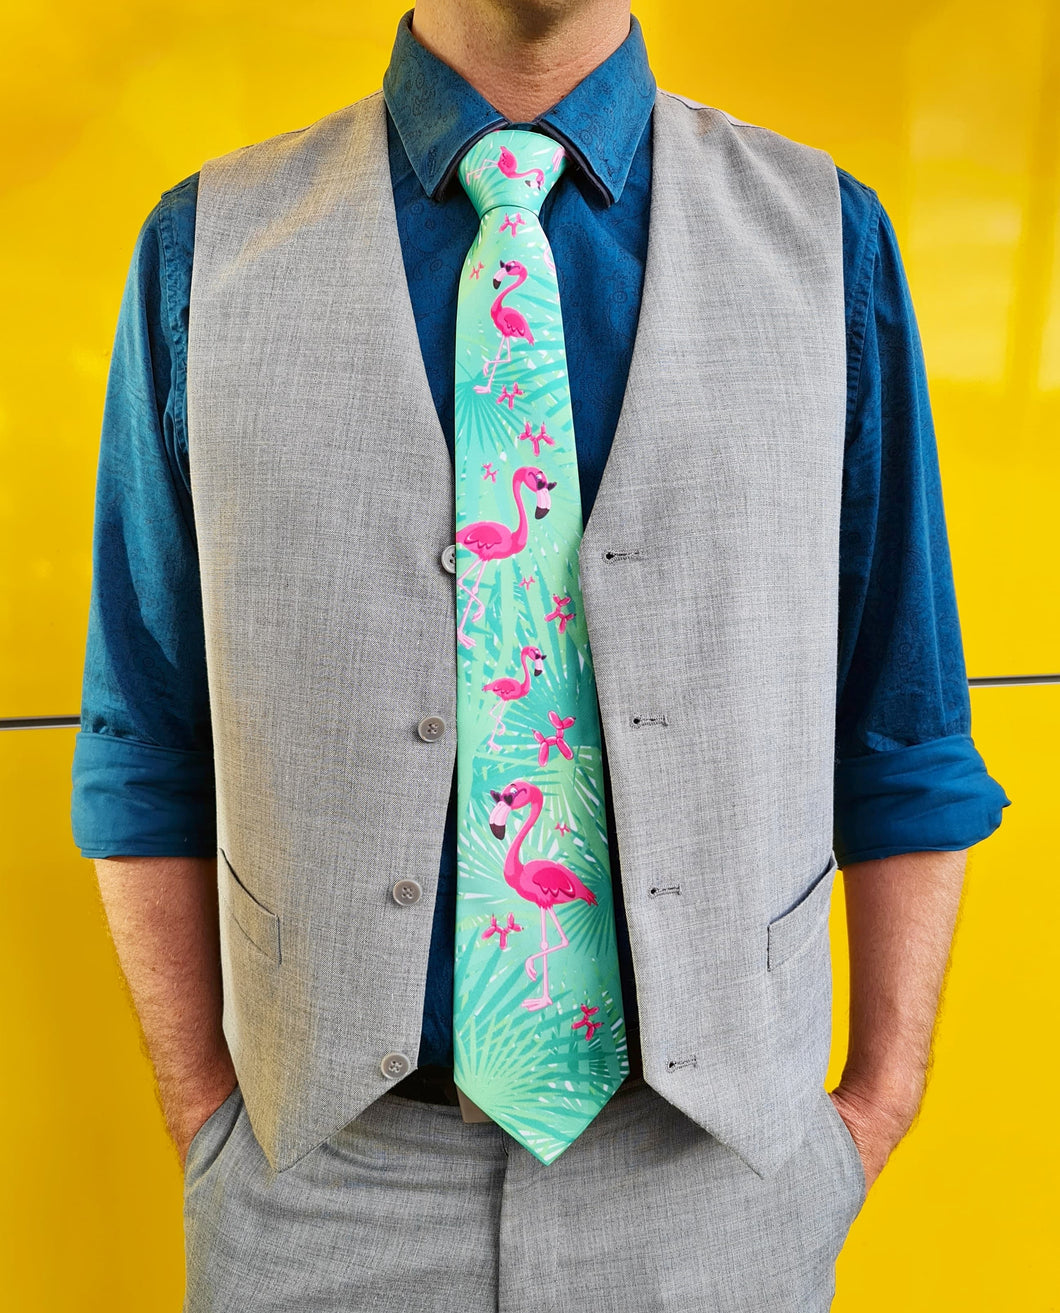 Flamingo Dog - Tie